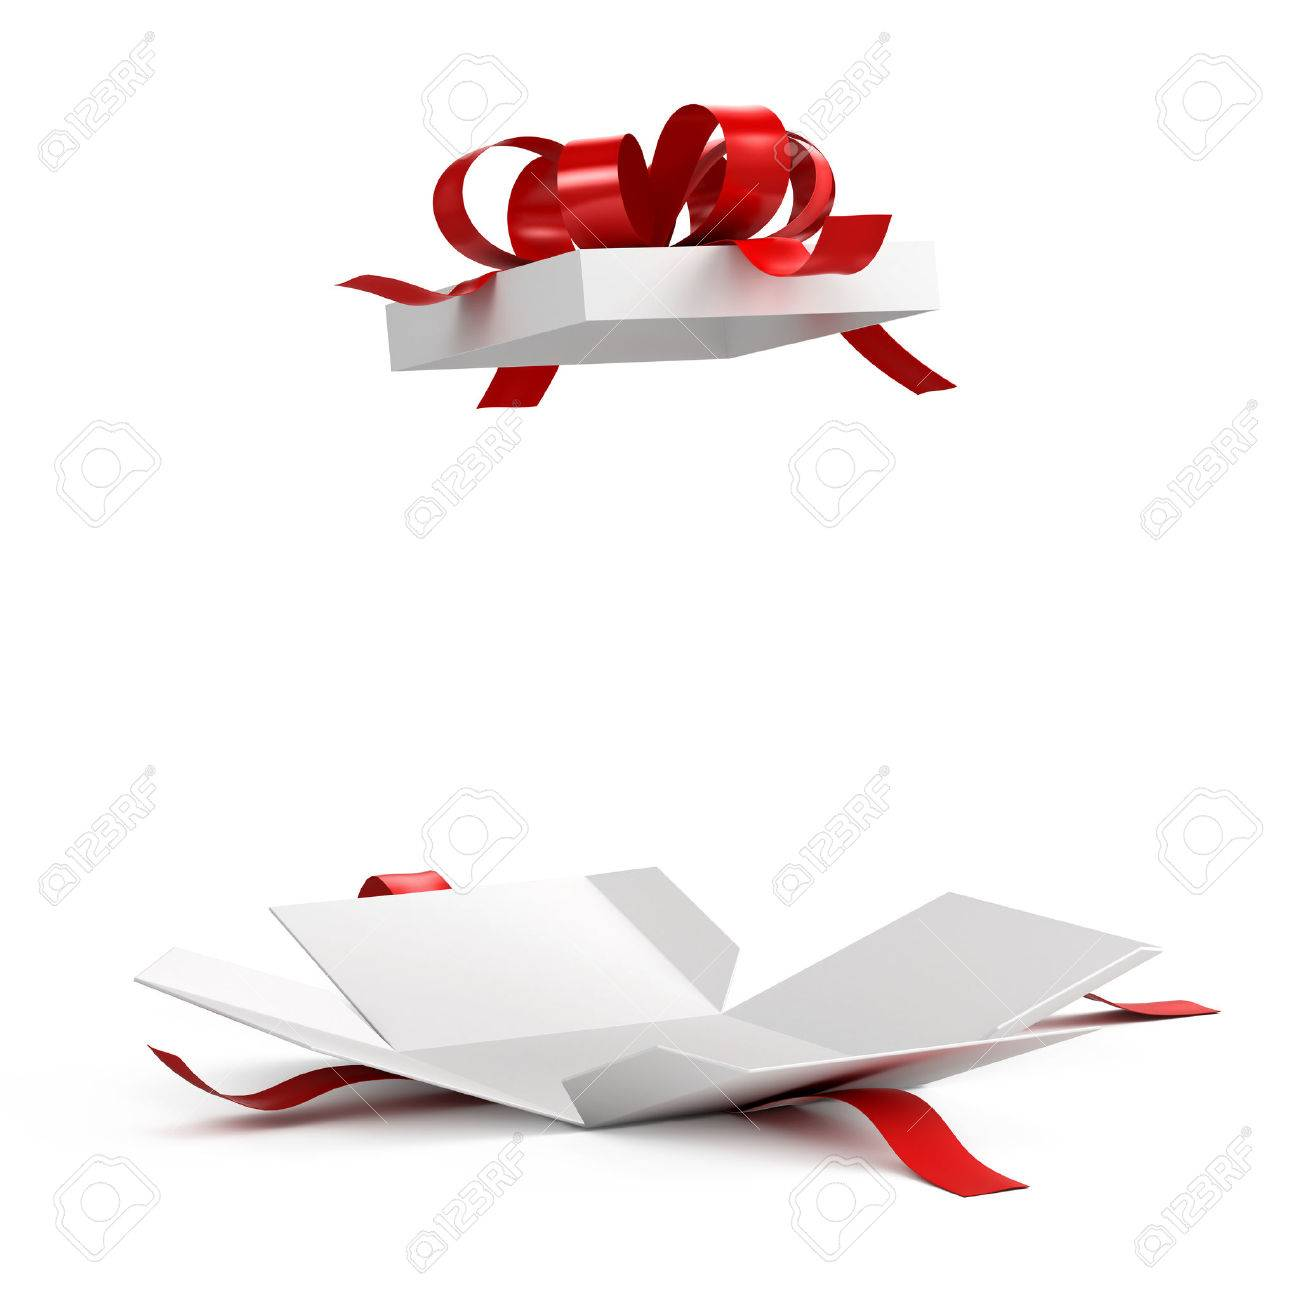 Open gift box with red ribbon on white background open gift box with red ribbon on white background 61991742 negle Gallery